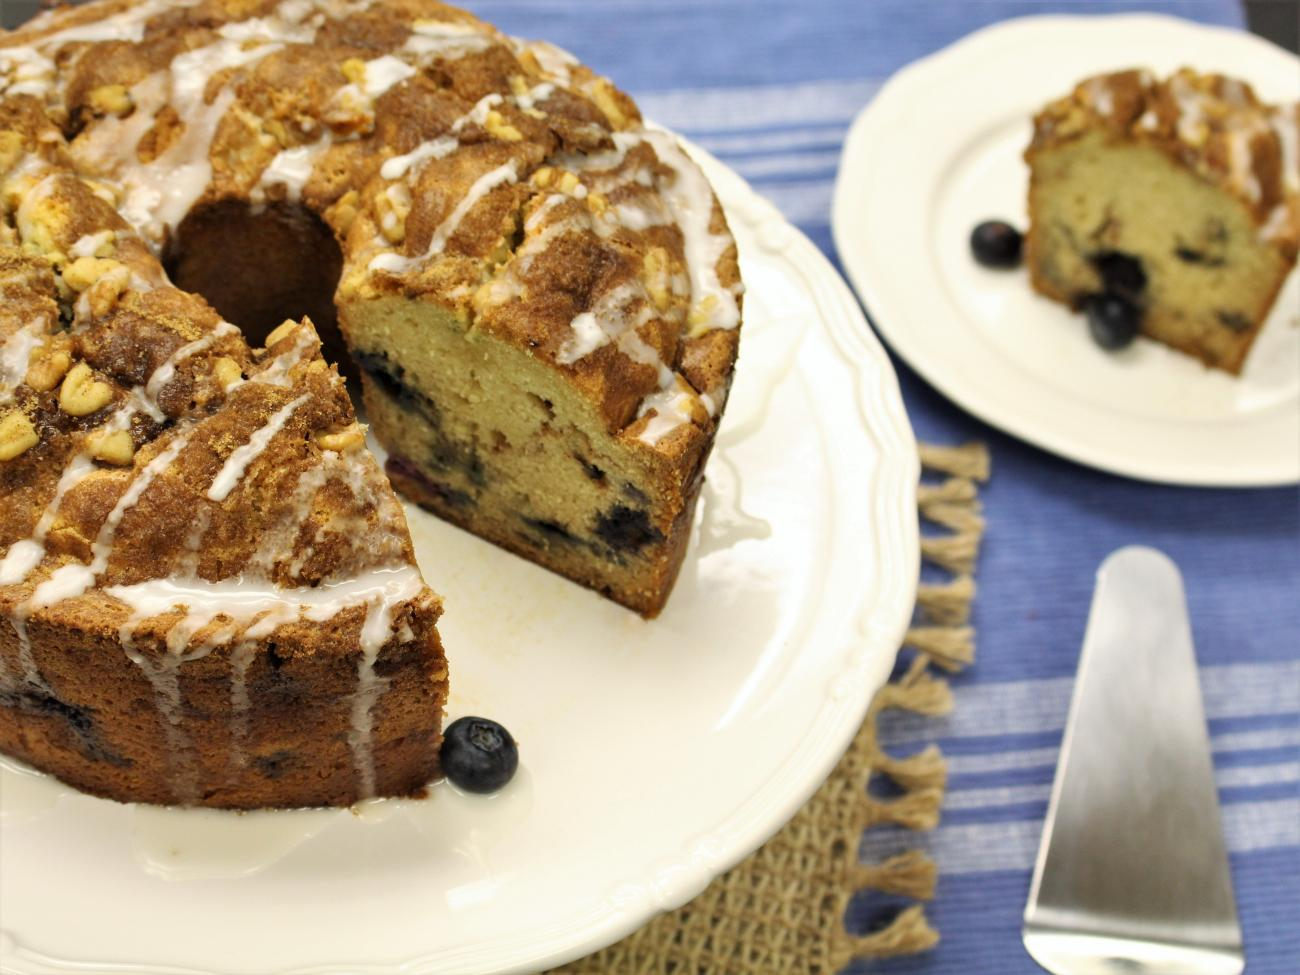 Recipe for Blueberry Streusel Coffee Cake